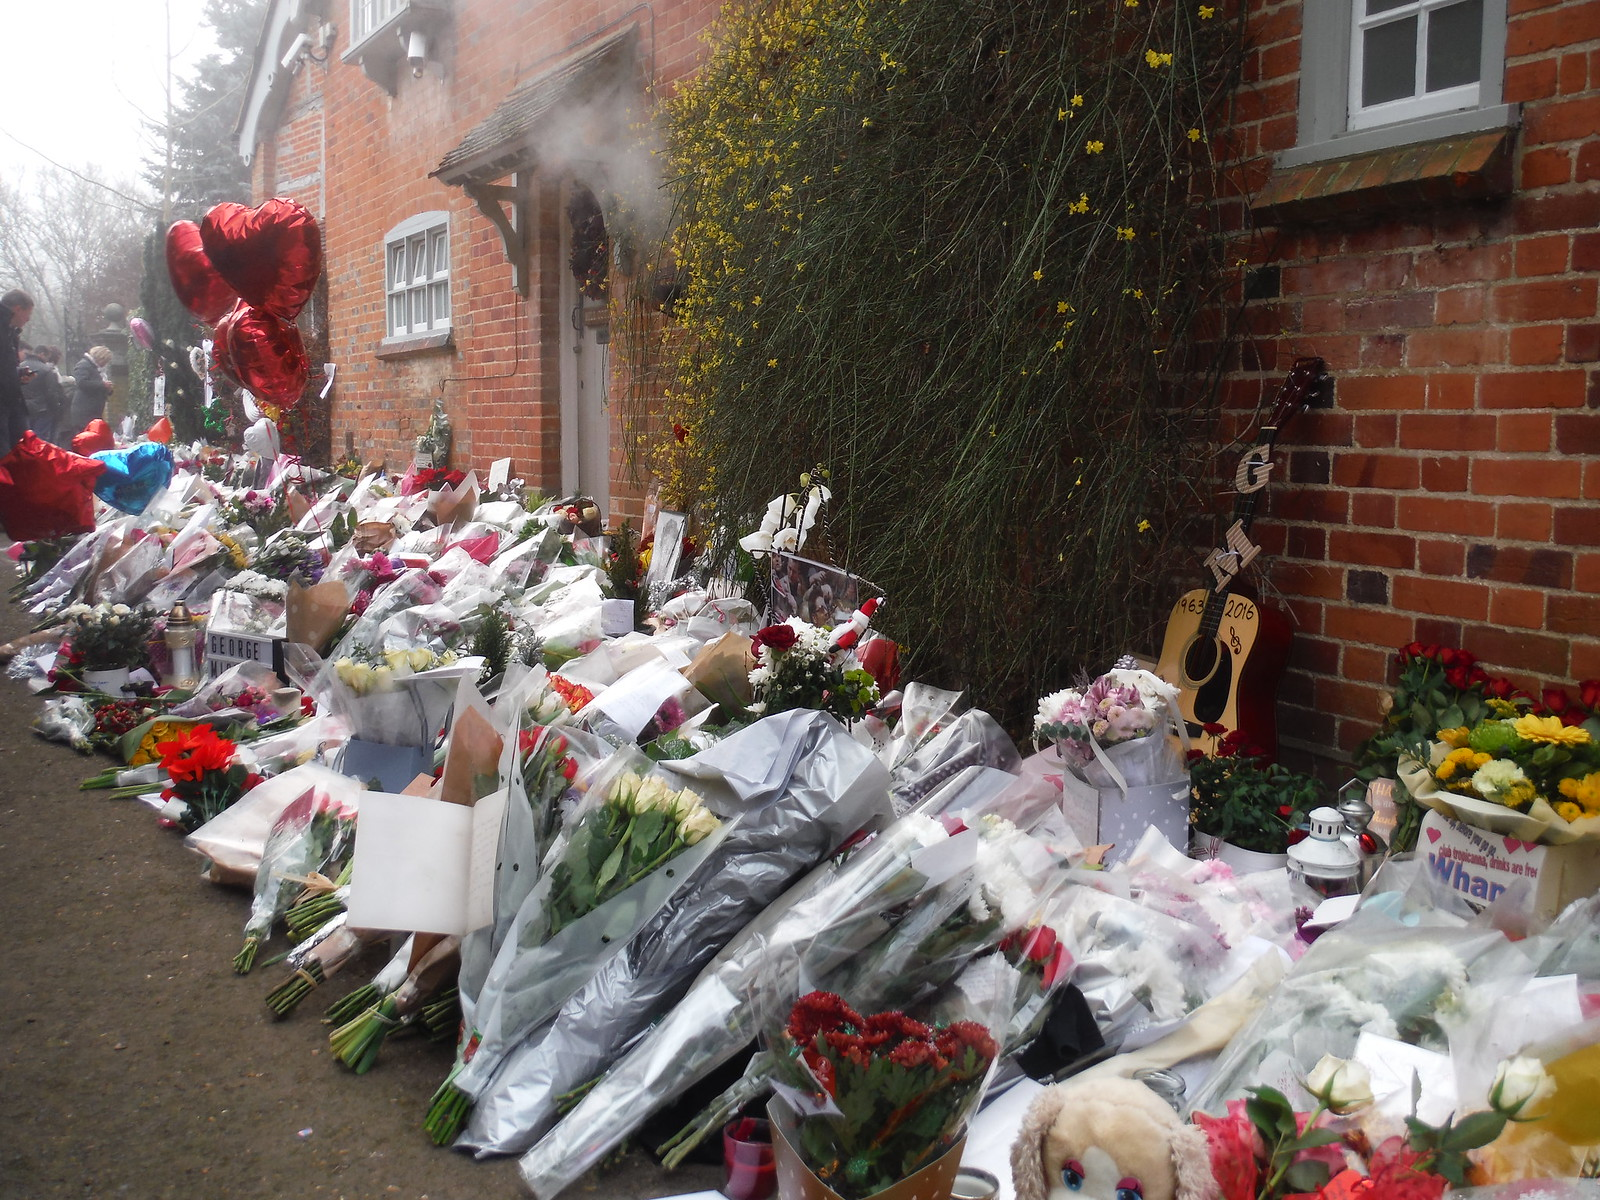 R.I.P. George Michael: Mill Cottage, Lock Approach, Goring-on-Thames SWC Walk 170 Pangbourne Circular via Goring-on-Thames